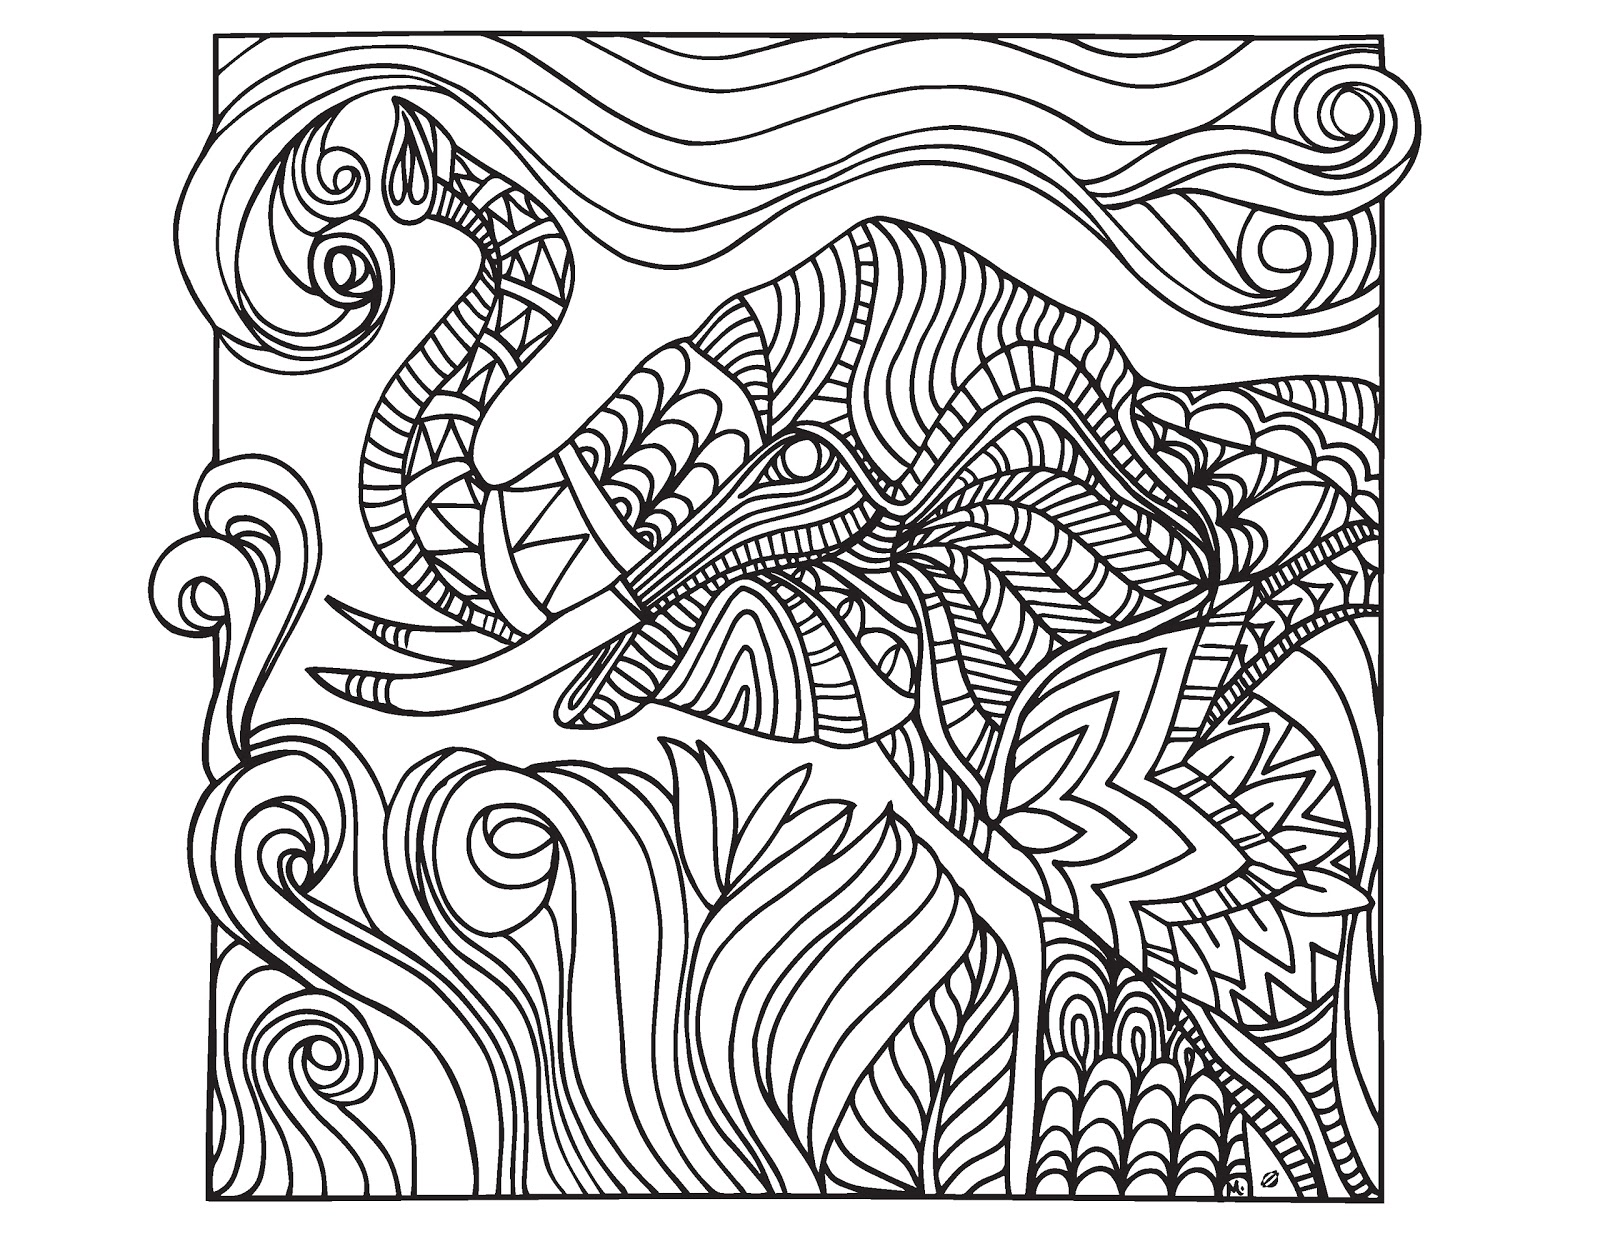 Coloring Pages For Grown Ups : Lostbumblebee grown up colouring sheet elephant